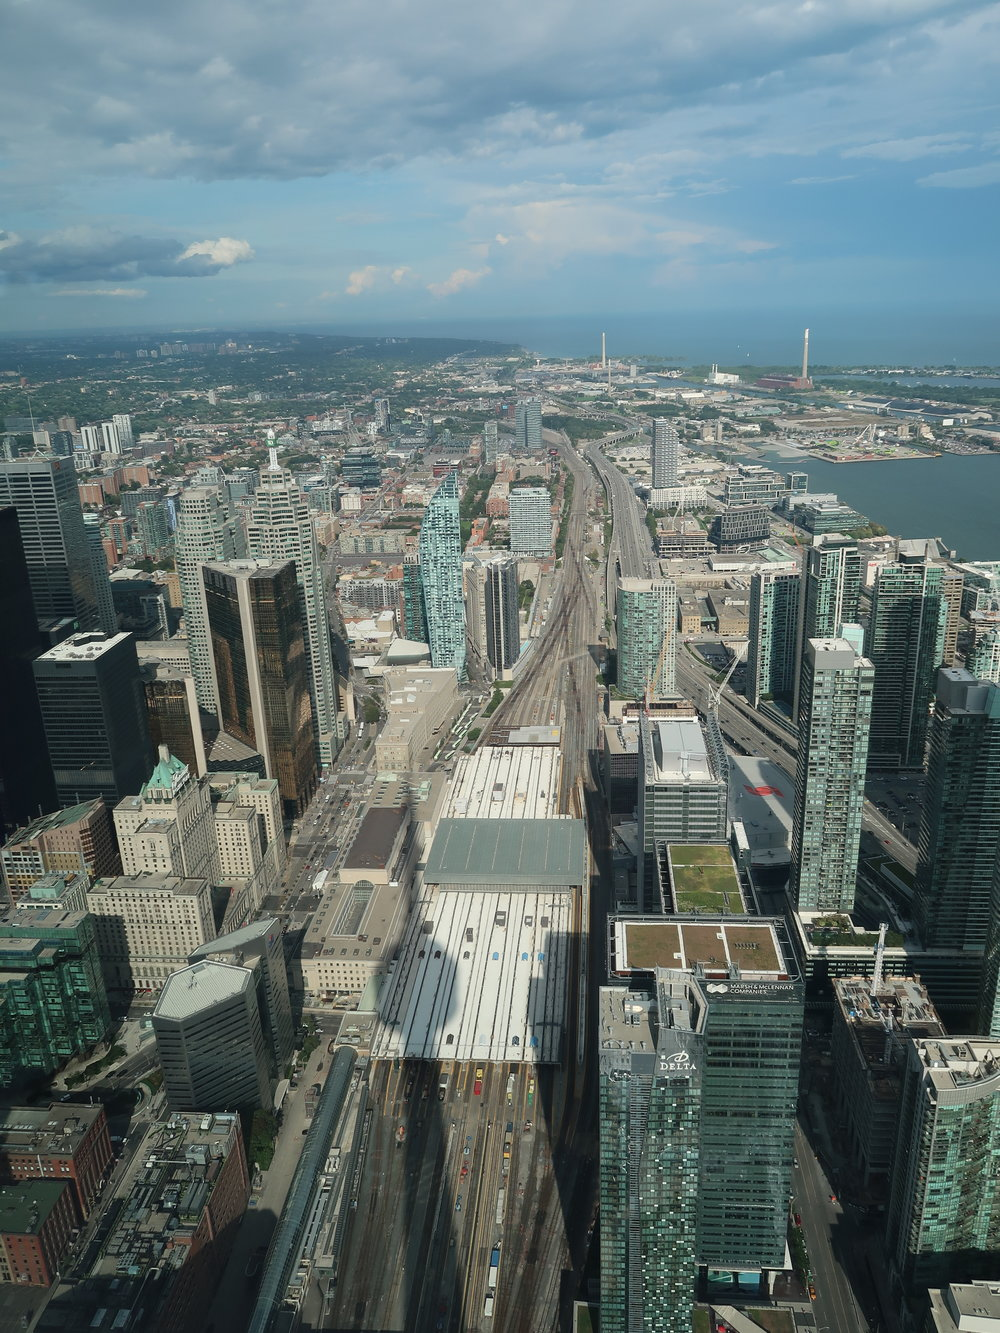 Views from the CN Tower